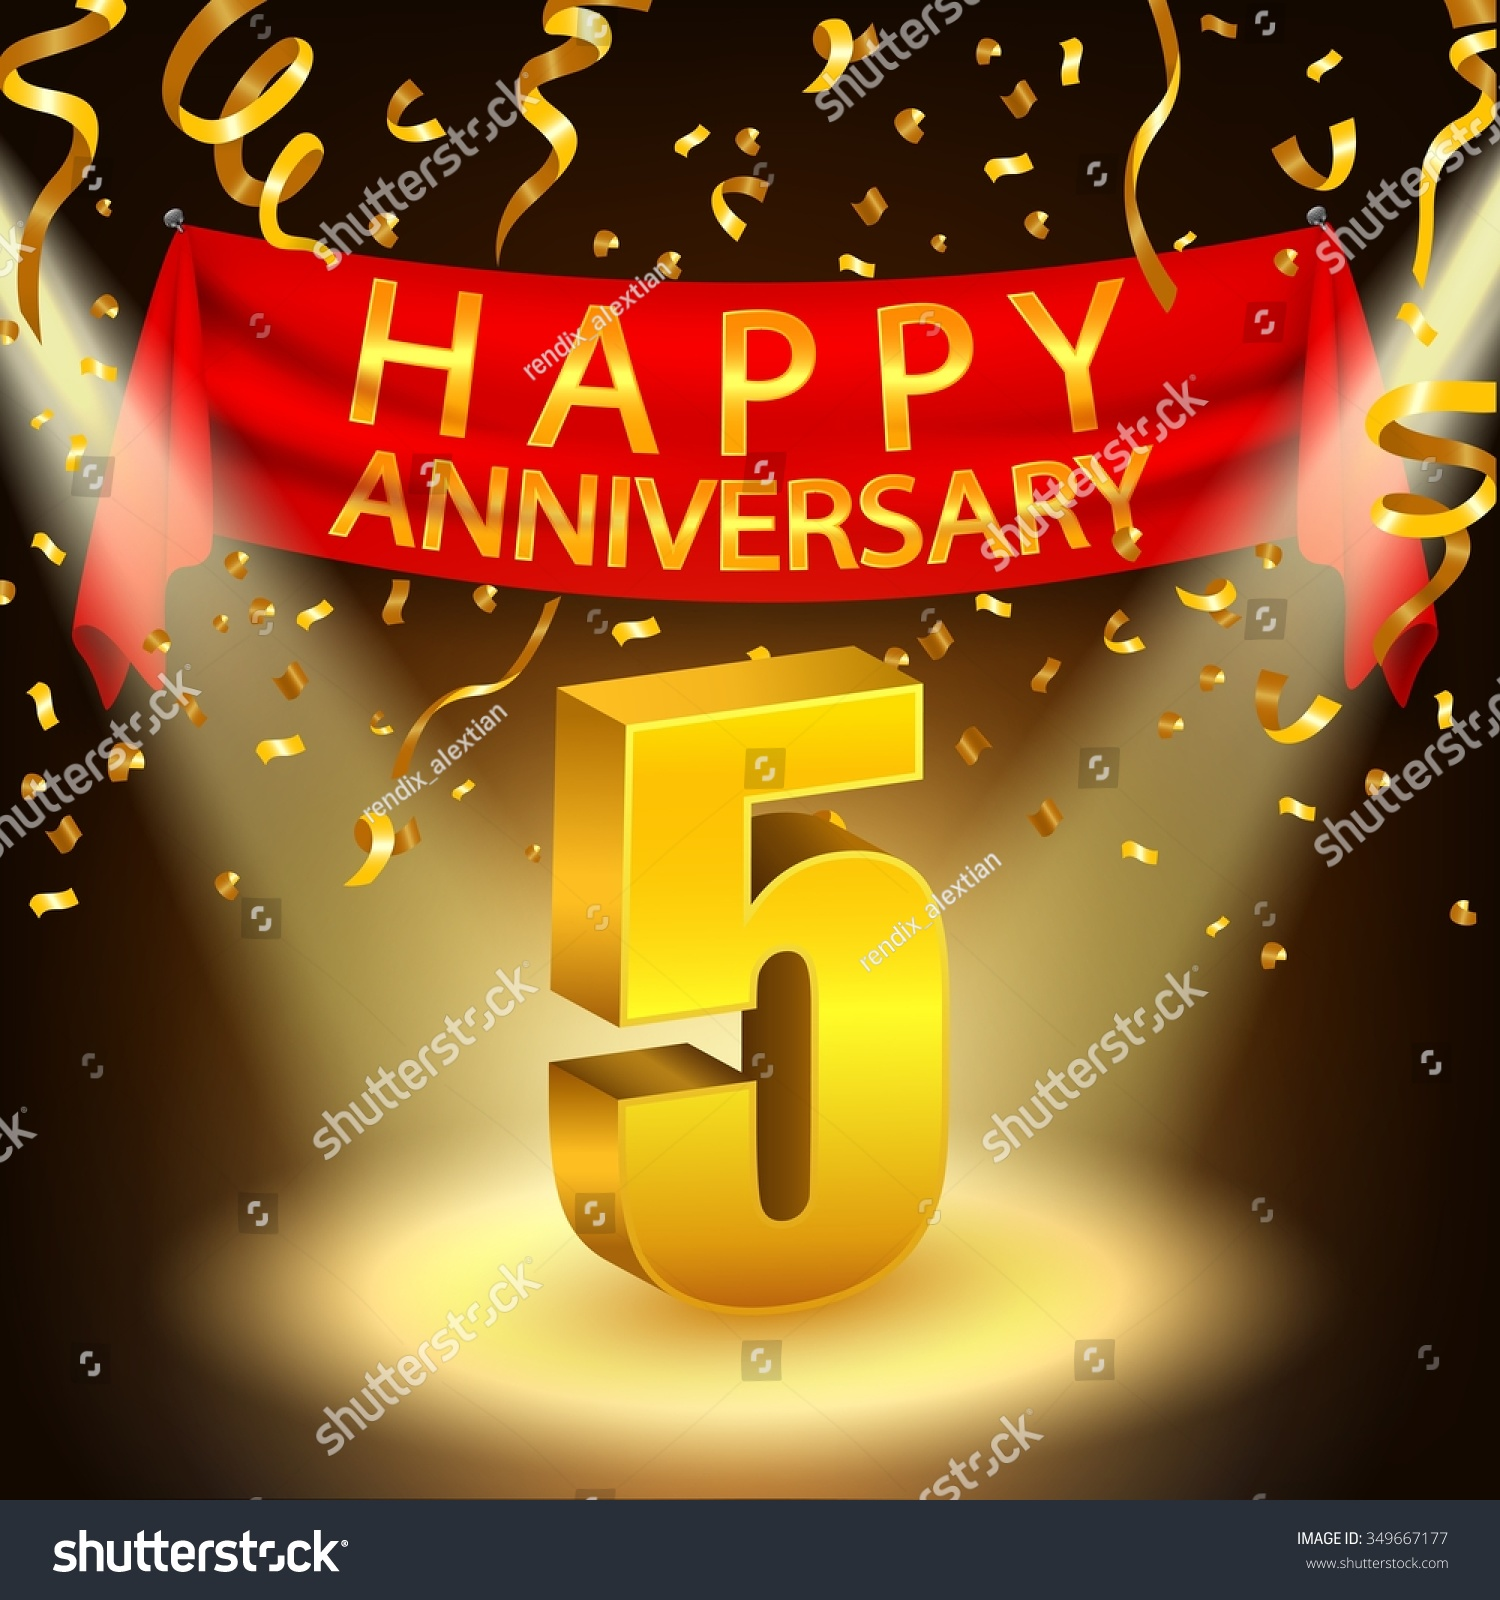 Happy 5th anniversary celebration golden confetti stock vector happy 5th anniversary celebration with golden confetti and spotlight kristyandbryce Choice Image